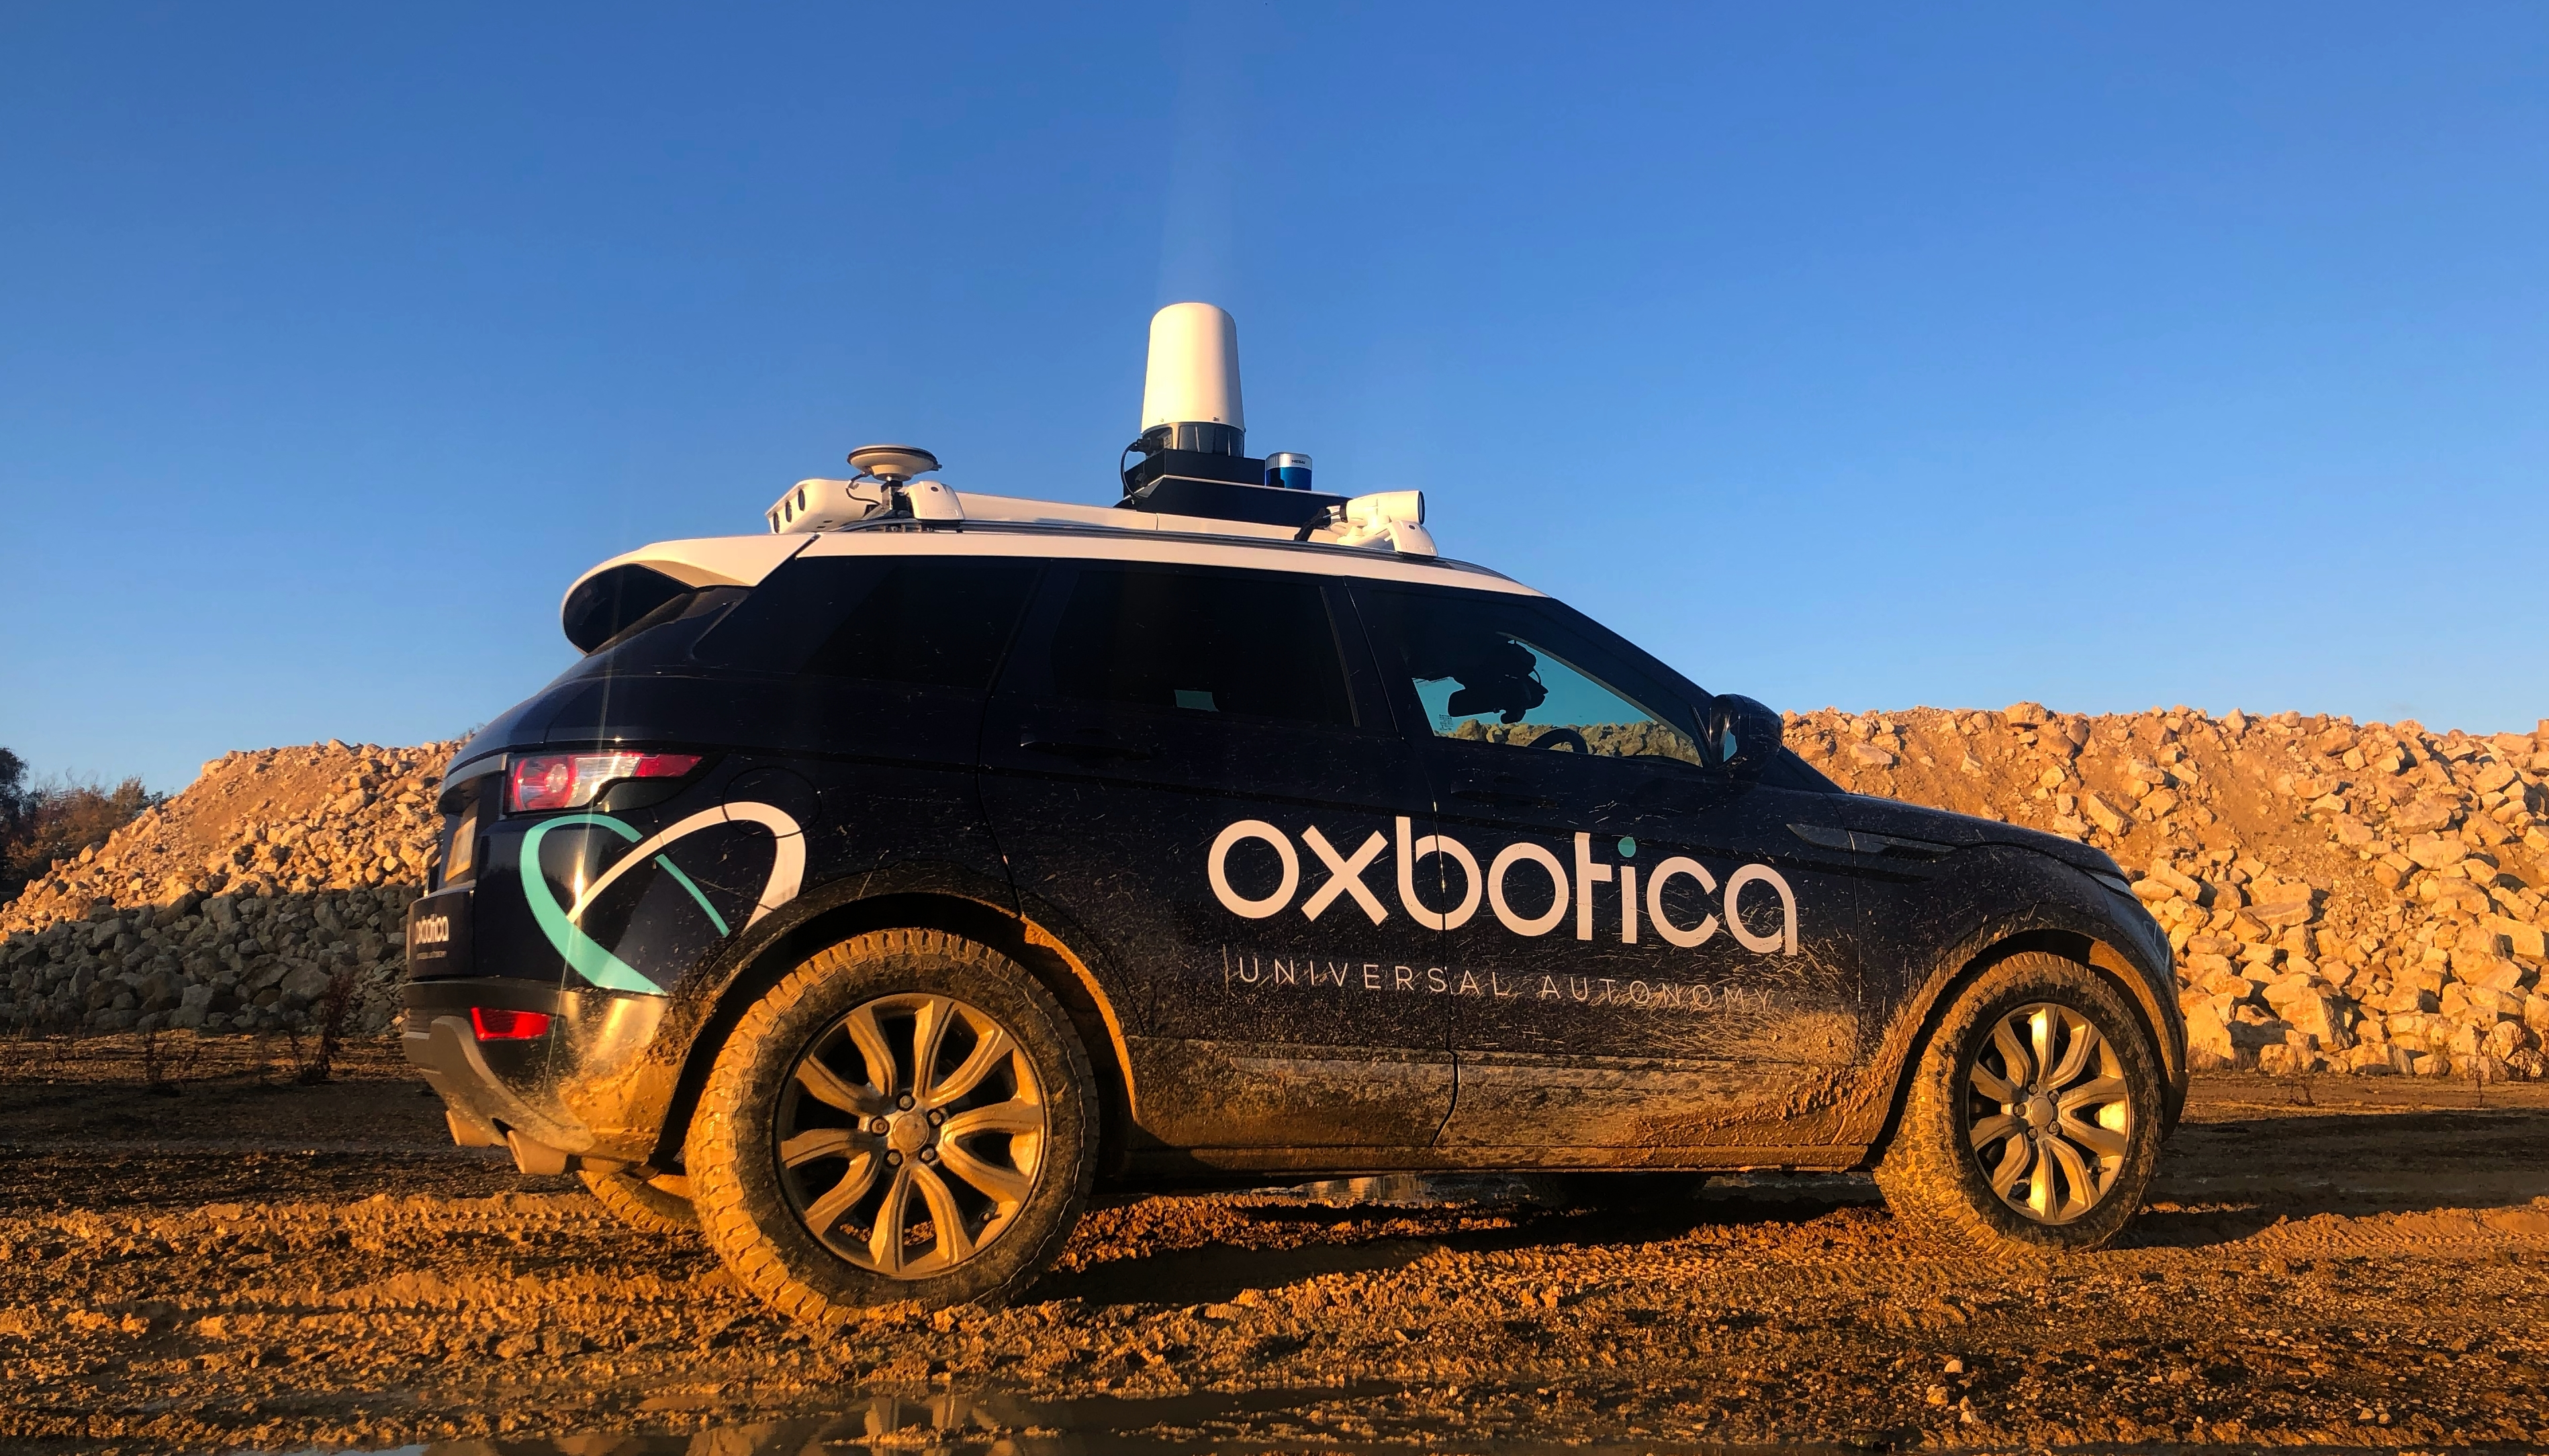 Oxbotica – $47 million raised to cement position as a global leader in autonomous vehicle software